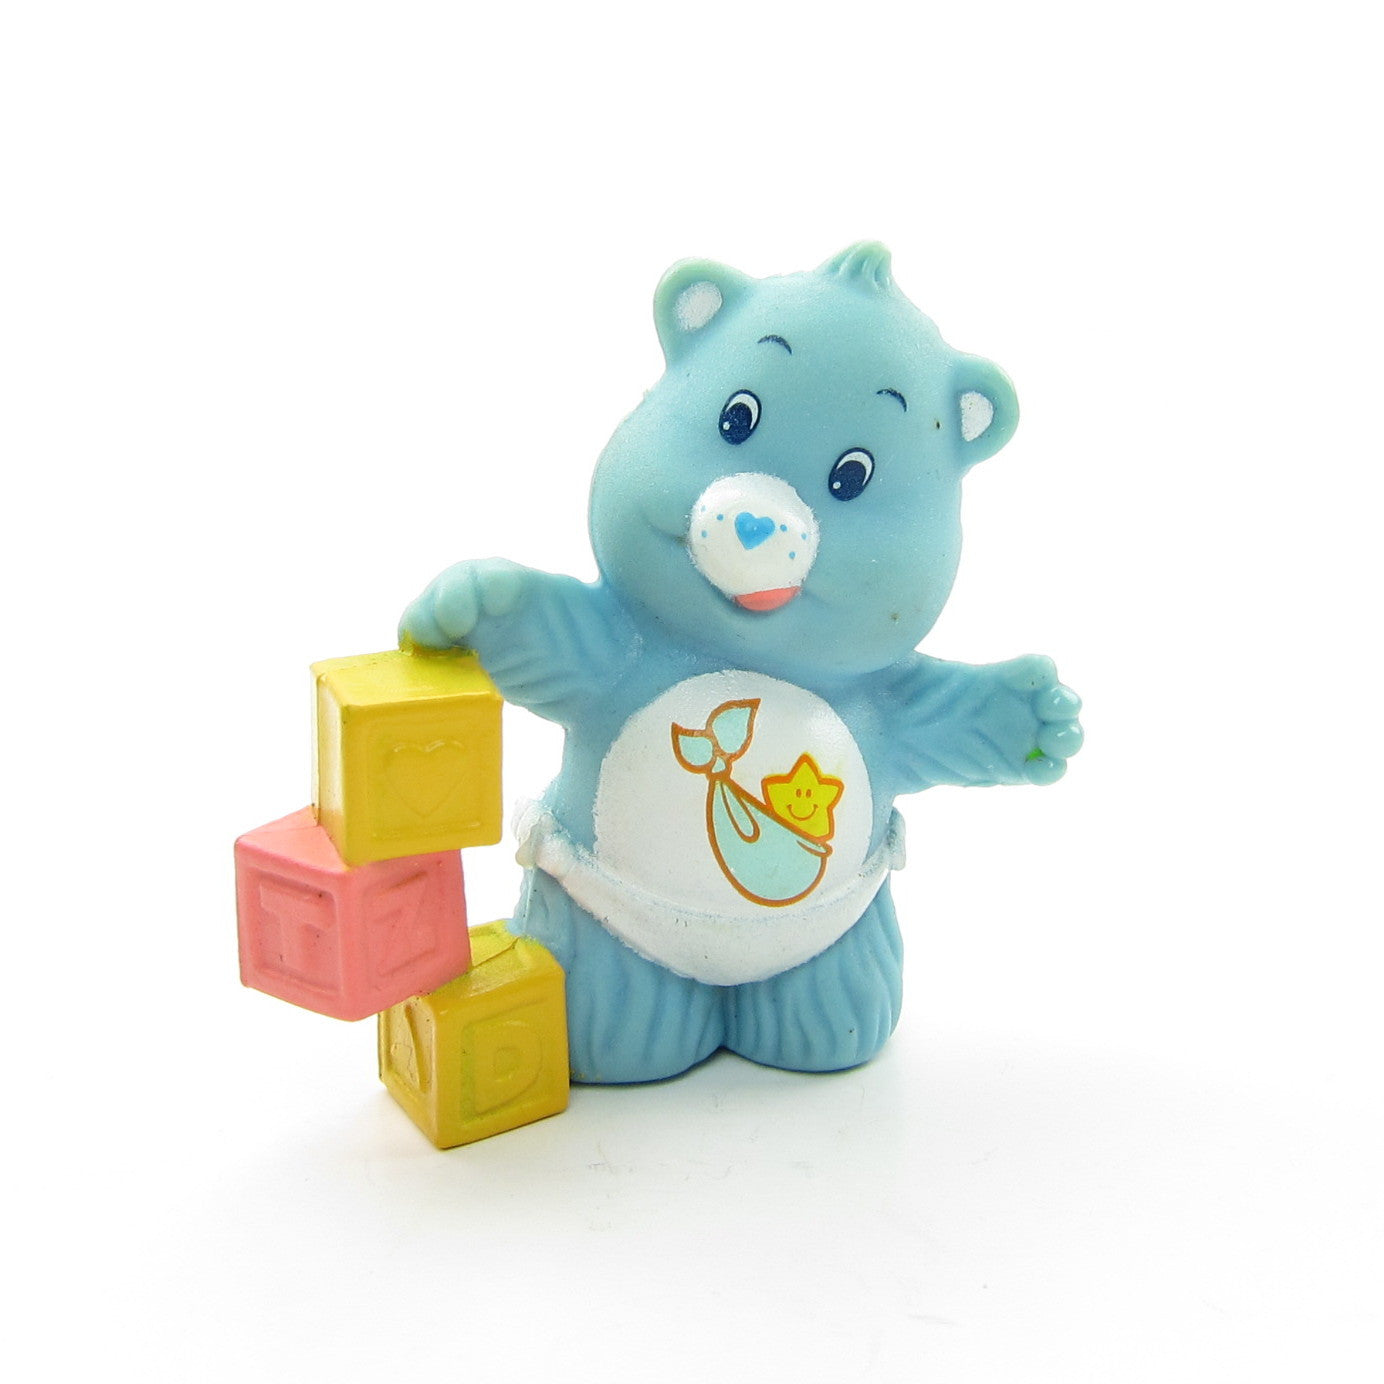 Baby Tugs Bear Stacking Blocks Care Bears miniature figurine